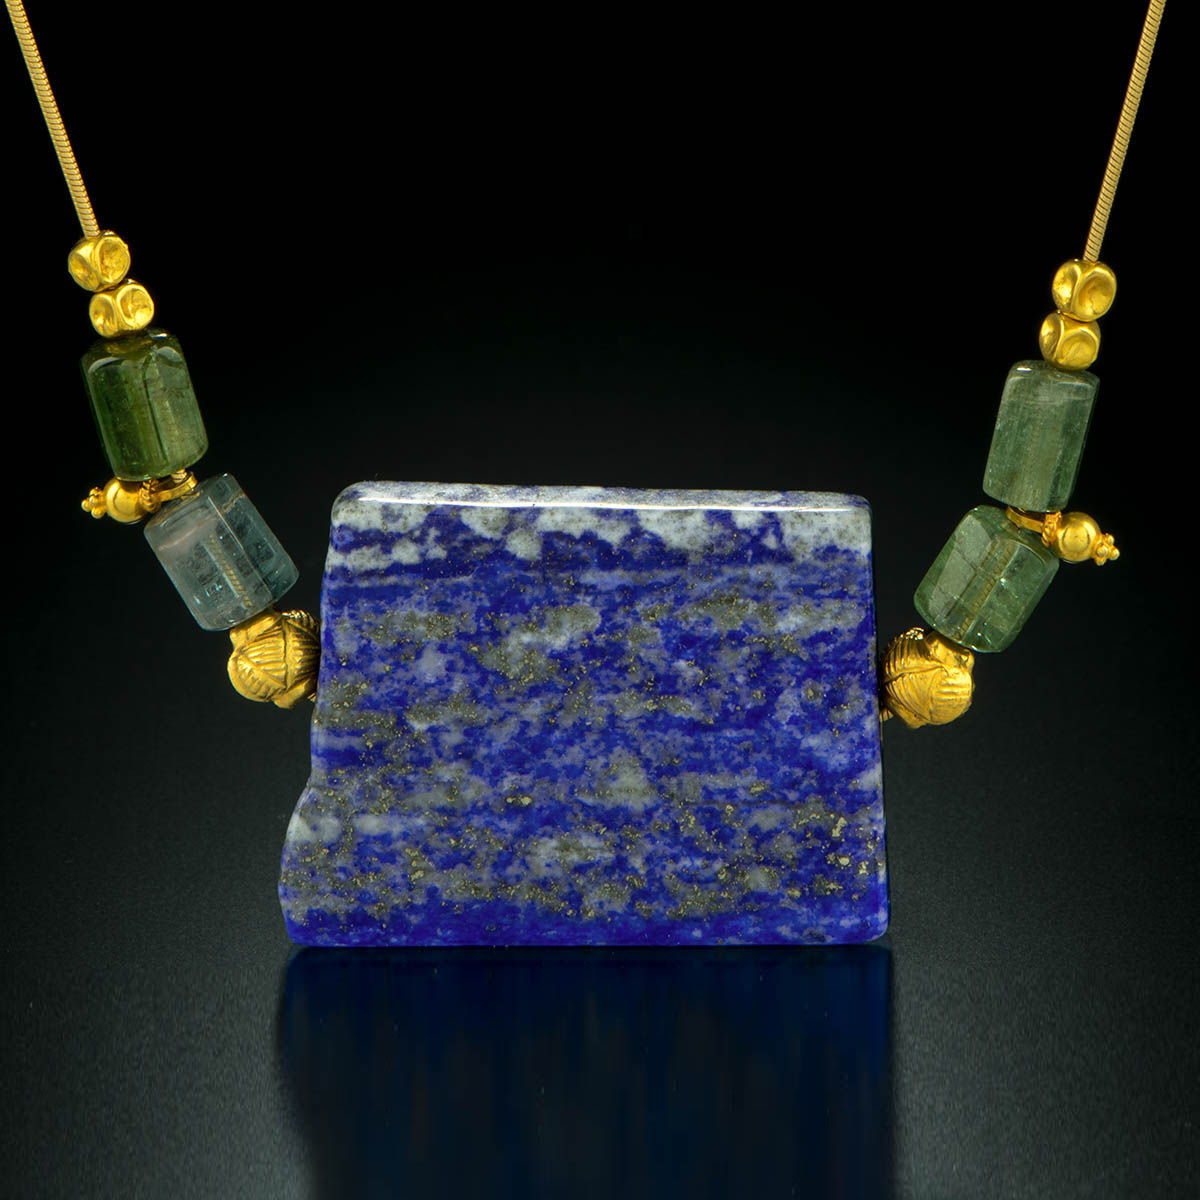 18K yellow gold necklace with Lapis, green Tourmaline and 18K gold beads.